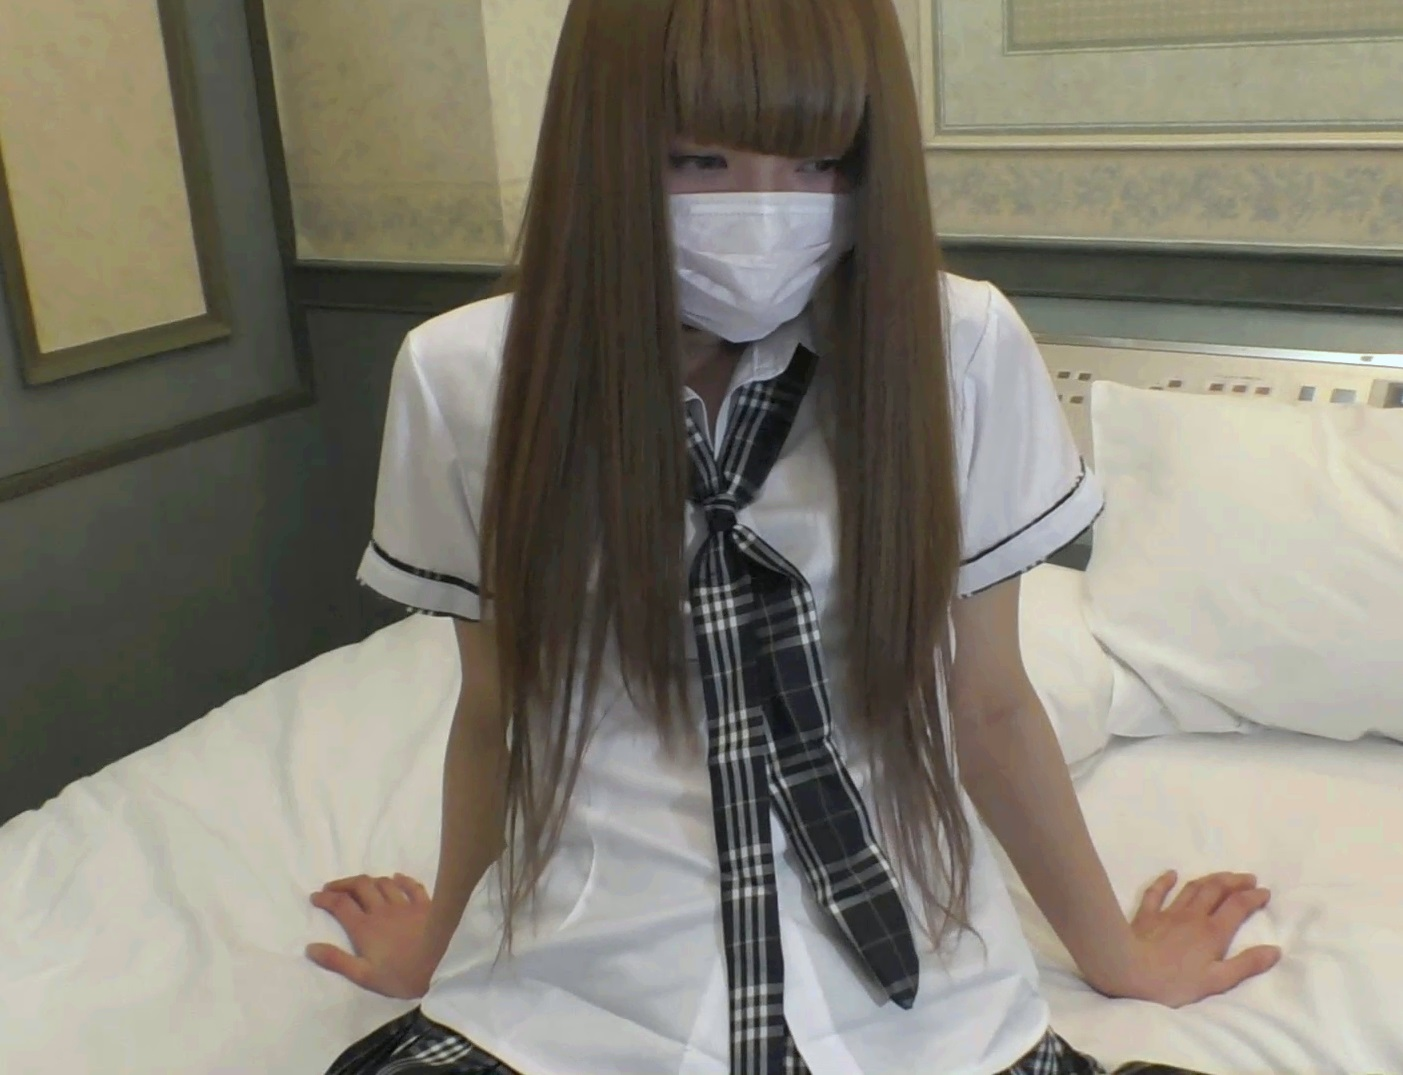 FC2 PPV 852426 Raw sex 18-year-old, small tits slender body type in J ○ uniform in cute white gal pie